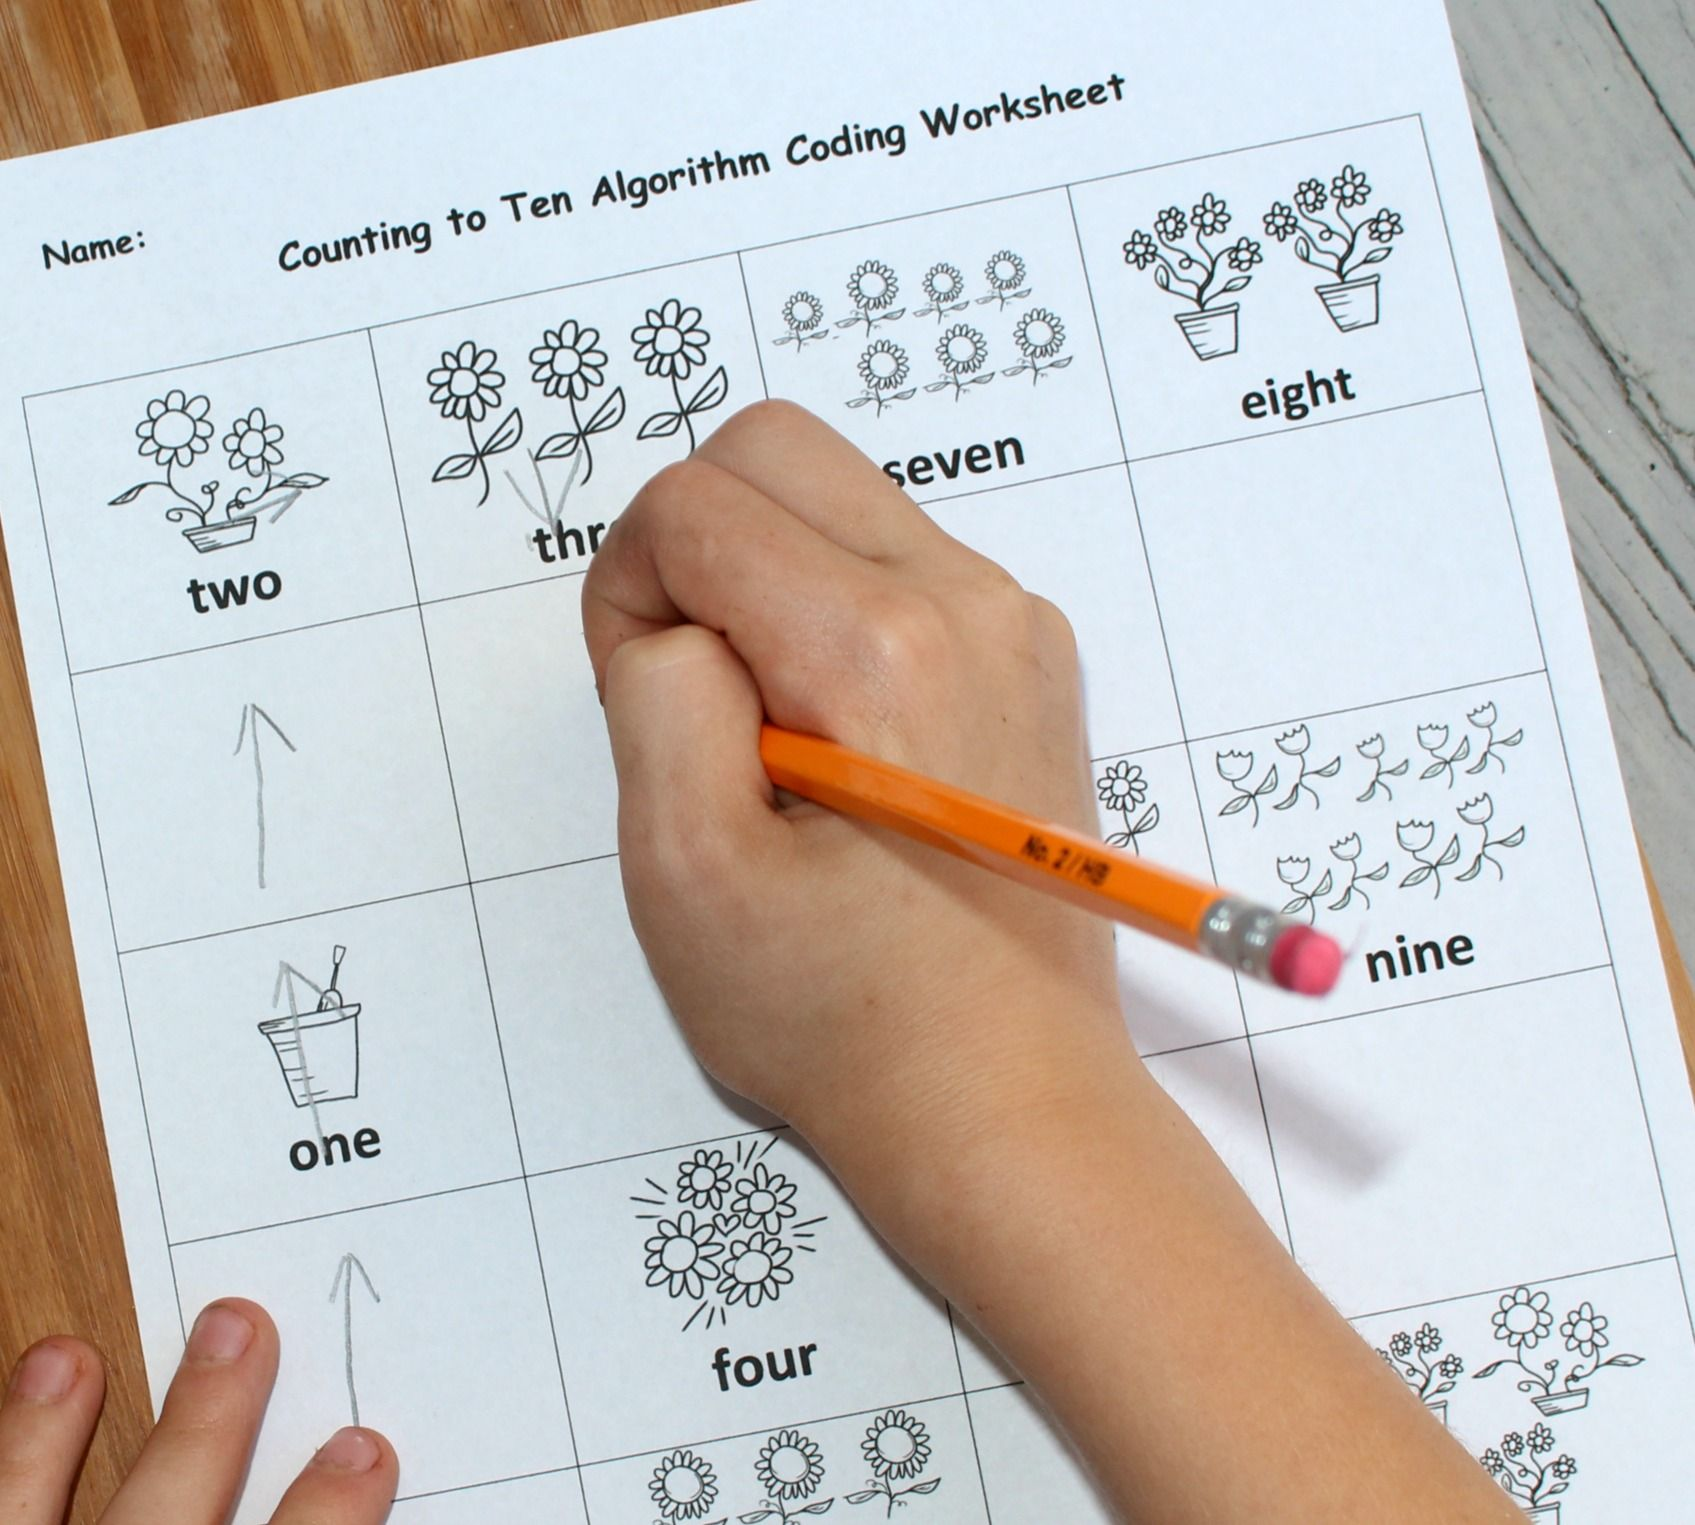 Counting To Ten Algorithm Coding Worksheet For